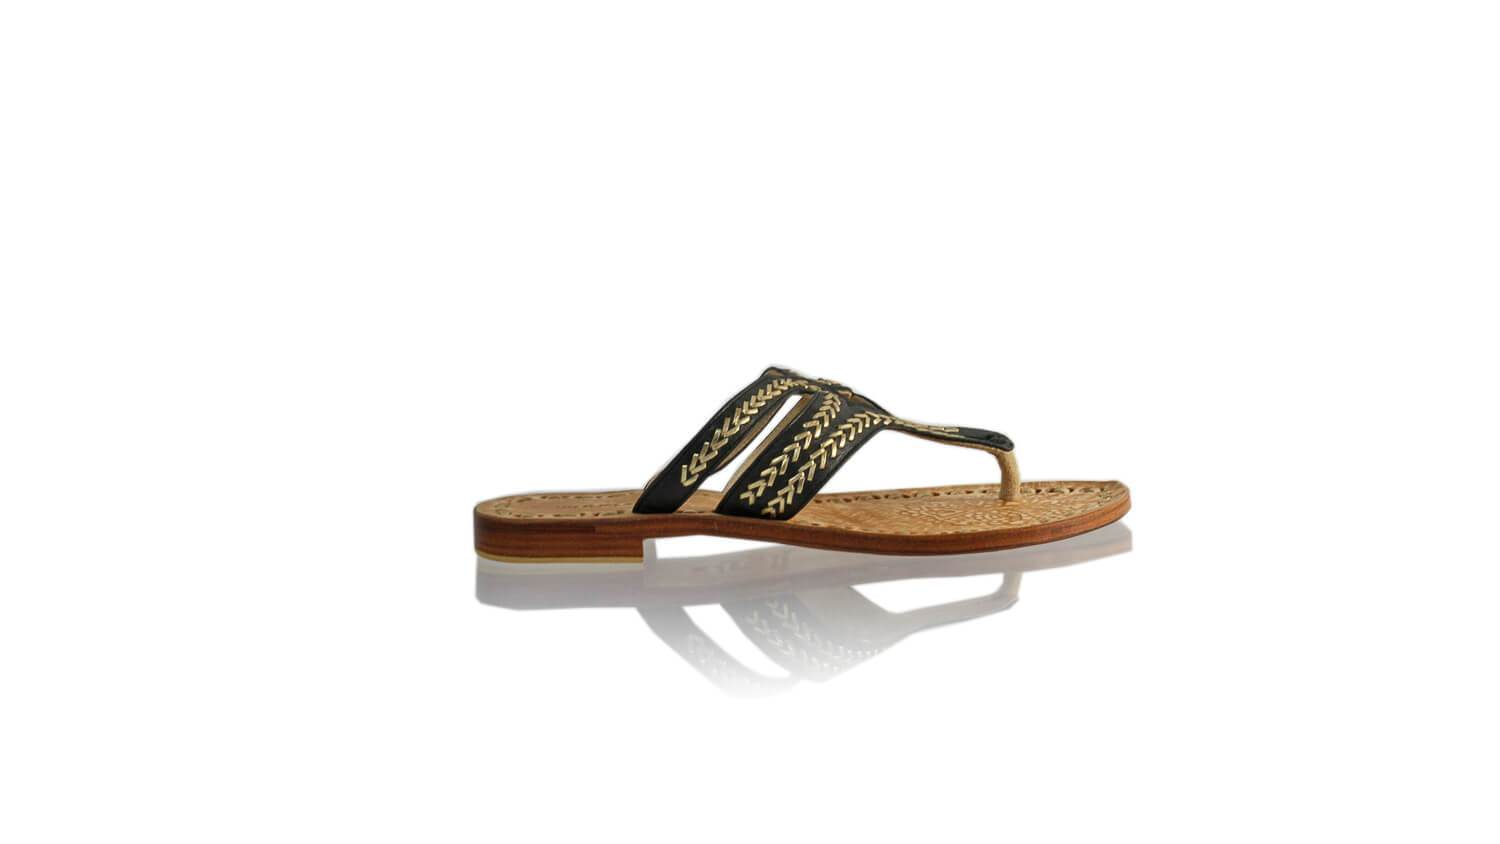 Leather-shoes-Arrah 20mm Flat - Black & Gold-sandals higheel-NILUH DJELANTIK-NILUH DJELANTIK